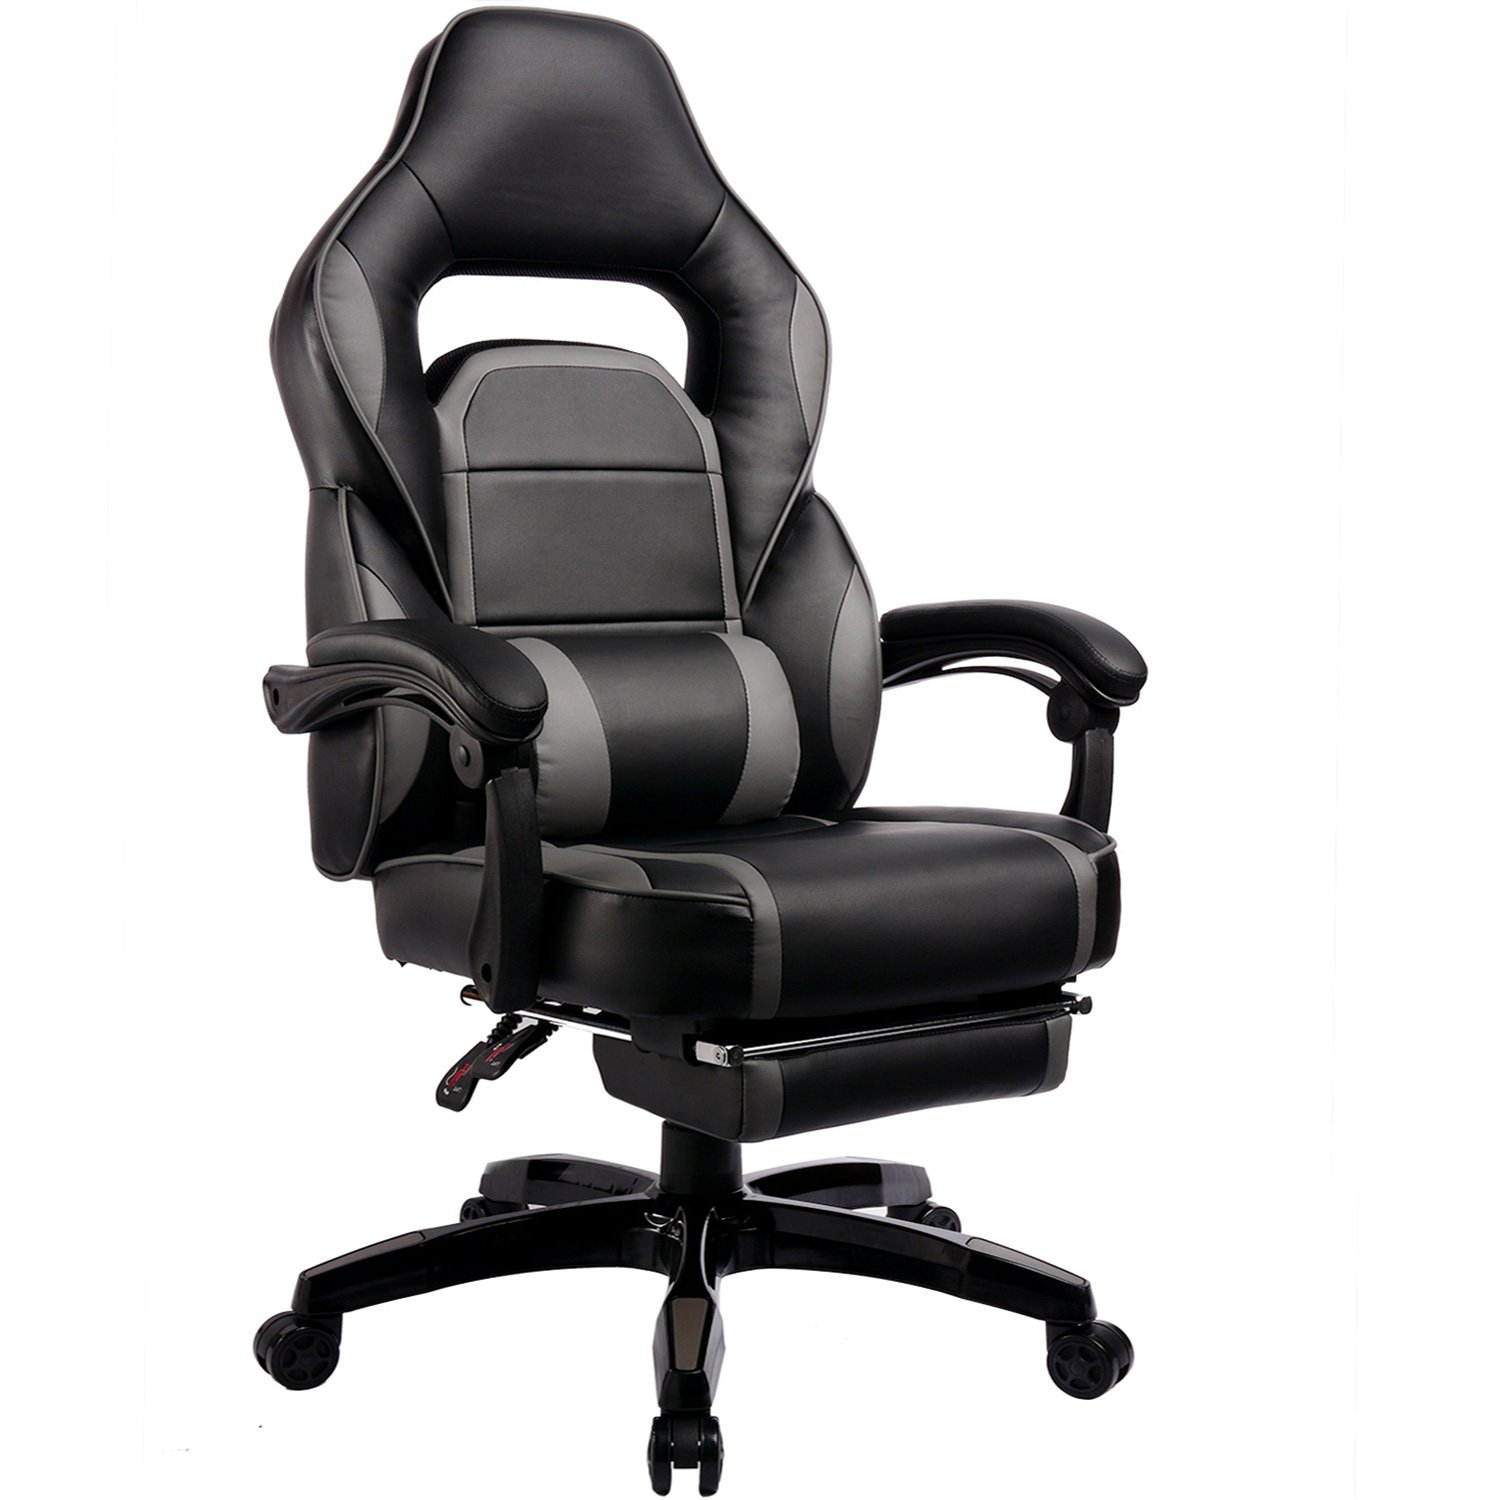 Managerial Chairs & Executive Chairs Amazon